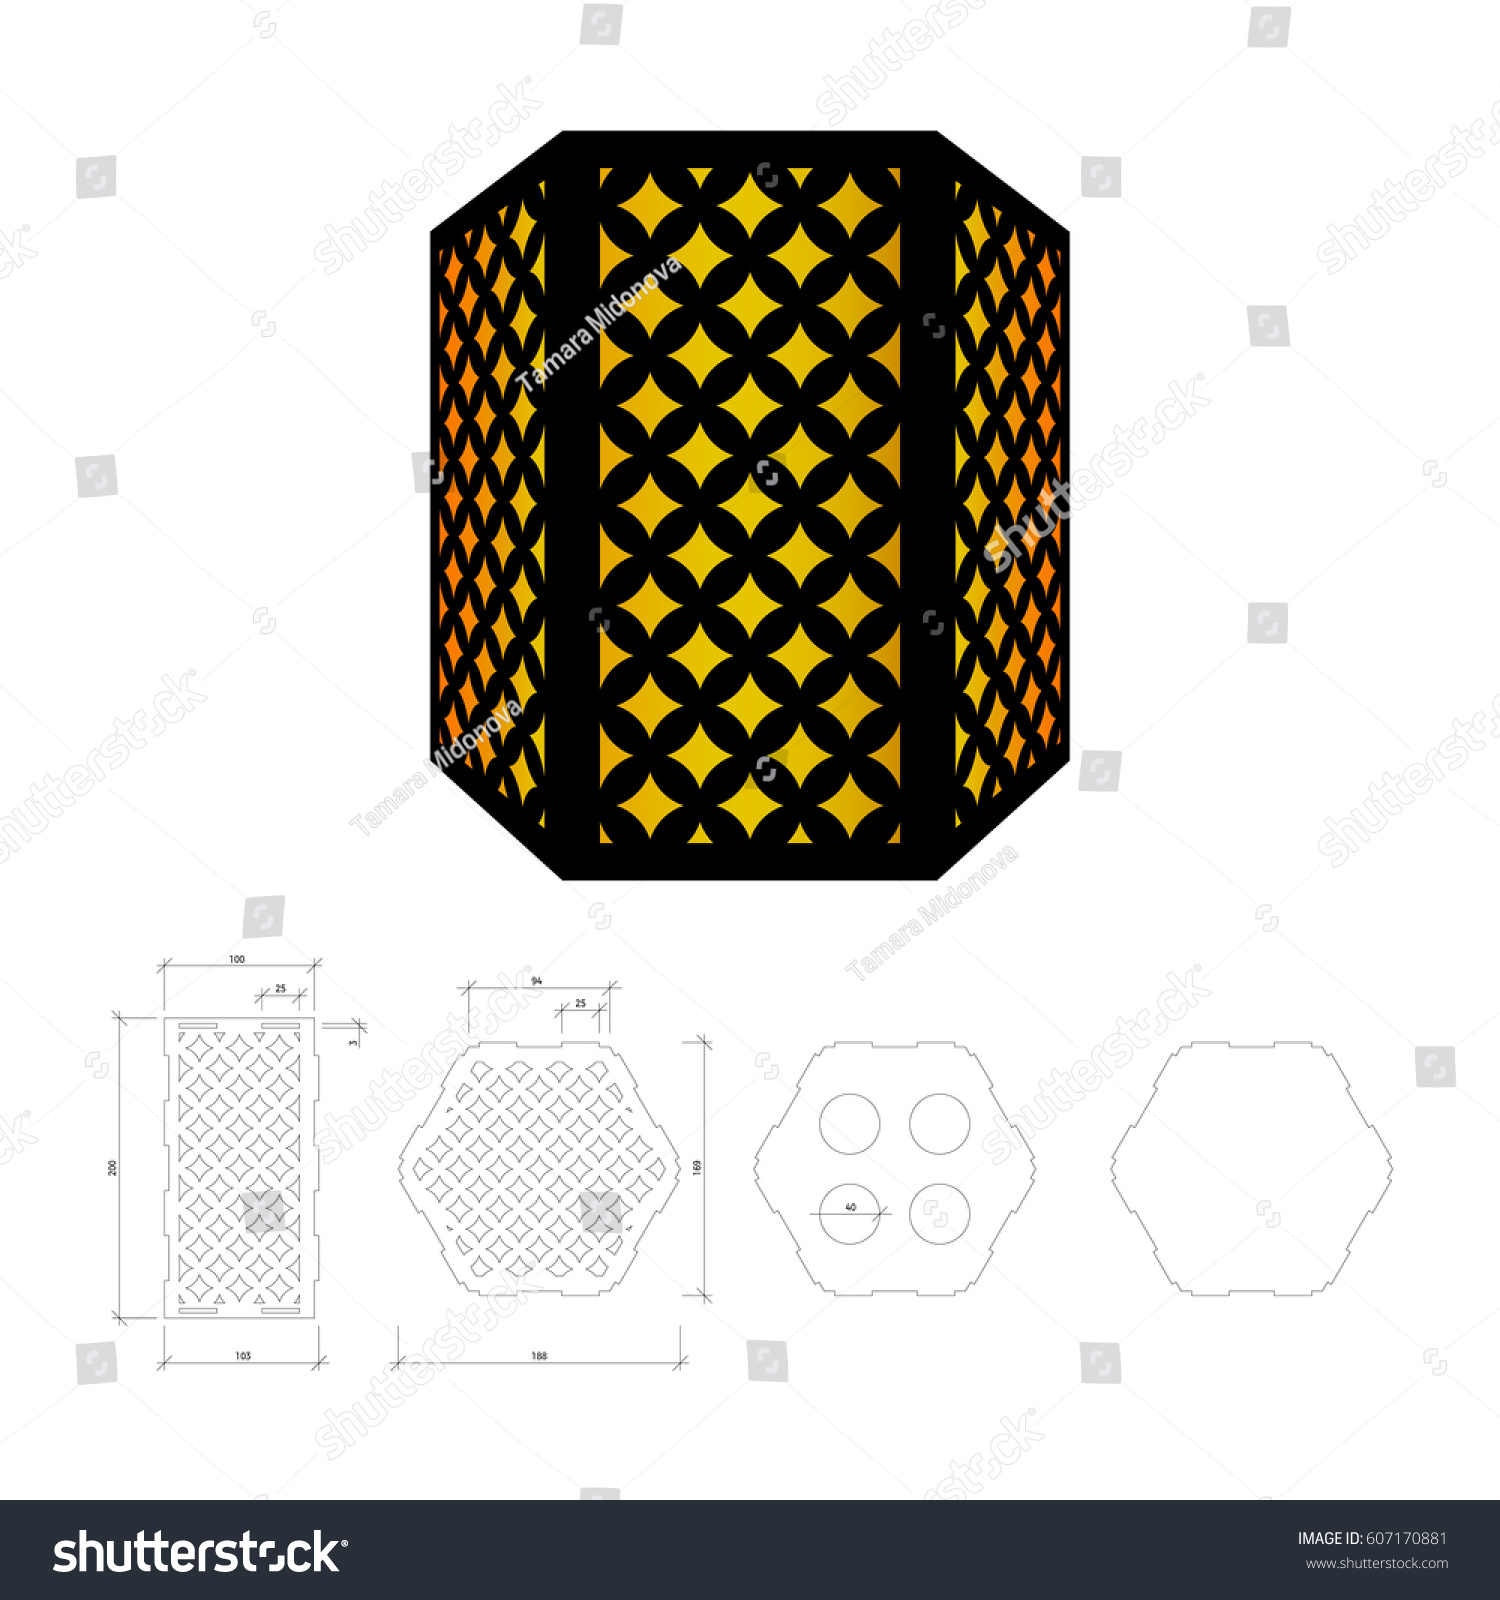 Cut out template lamp candle holder stock vector 607170881 cut out template lamp candle holder stock vector 607170881 shutterstock arubaitofo Choice Image